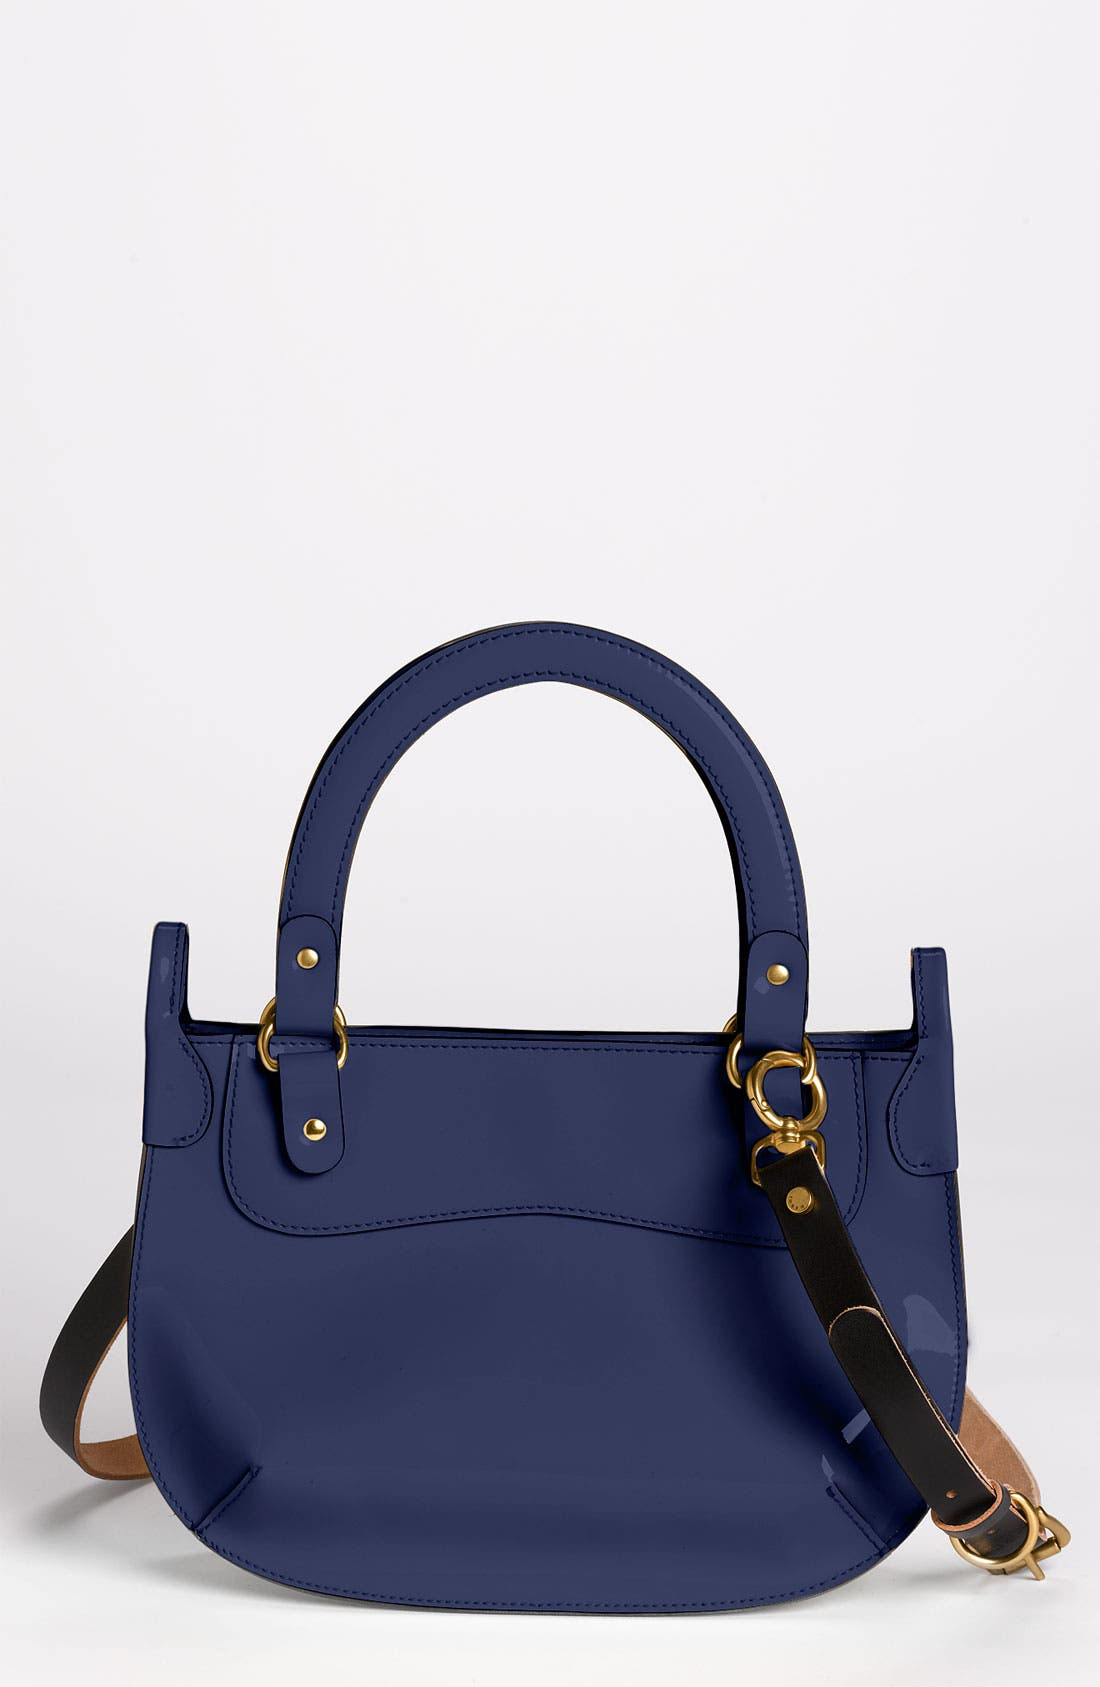 Alternate Image 1 Selected - Marni 'Small' Patent Leather Crossbody Bag